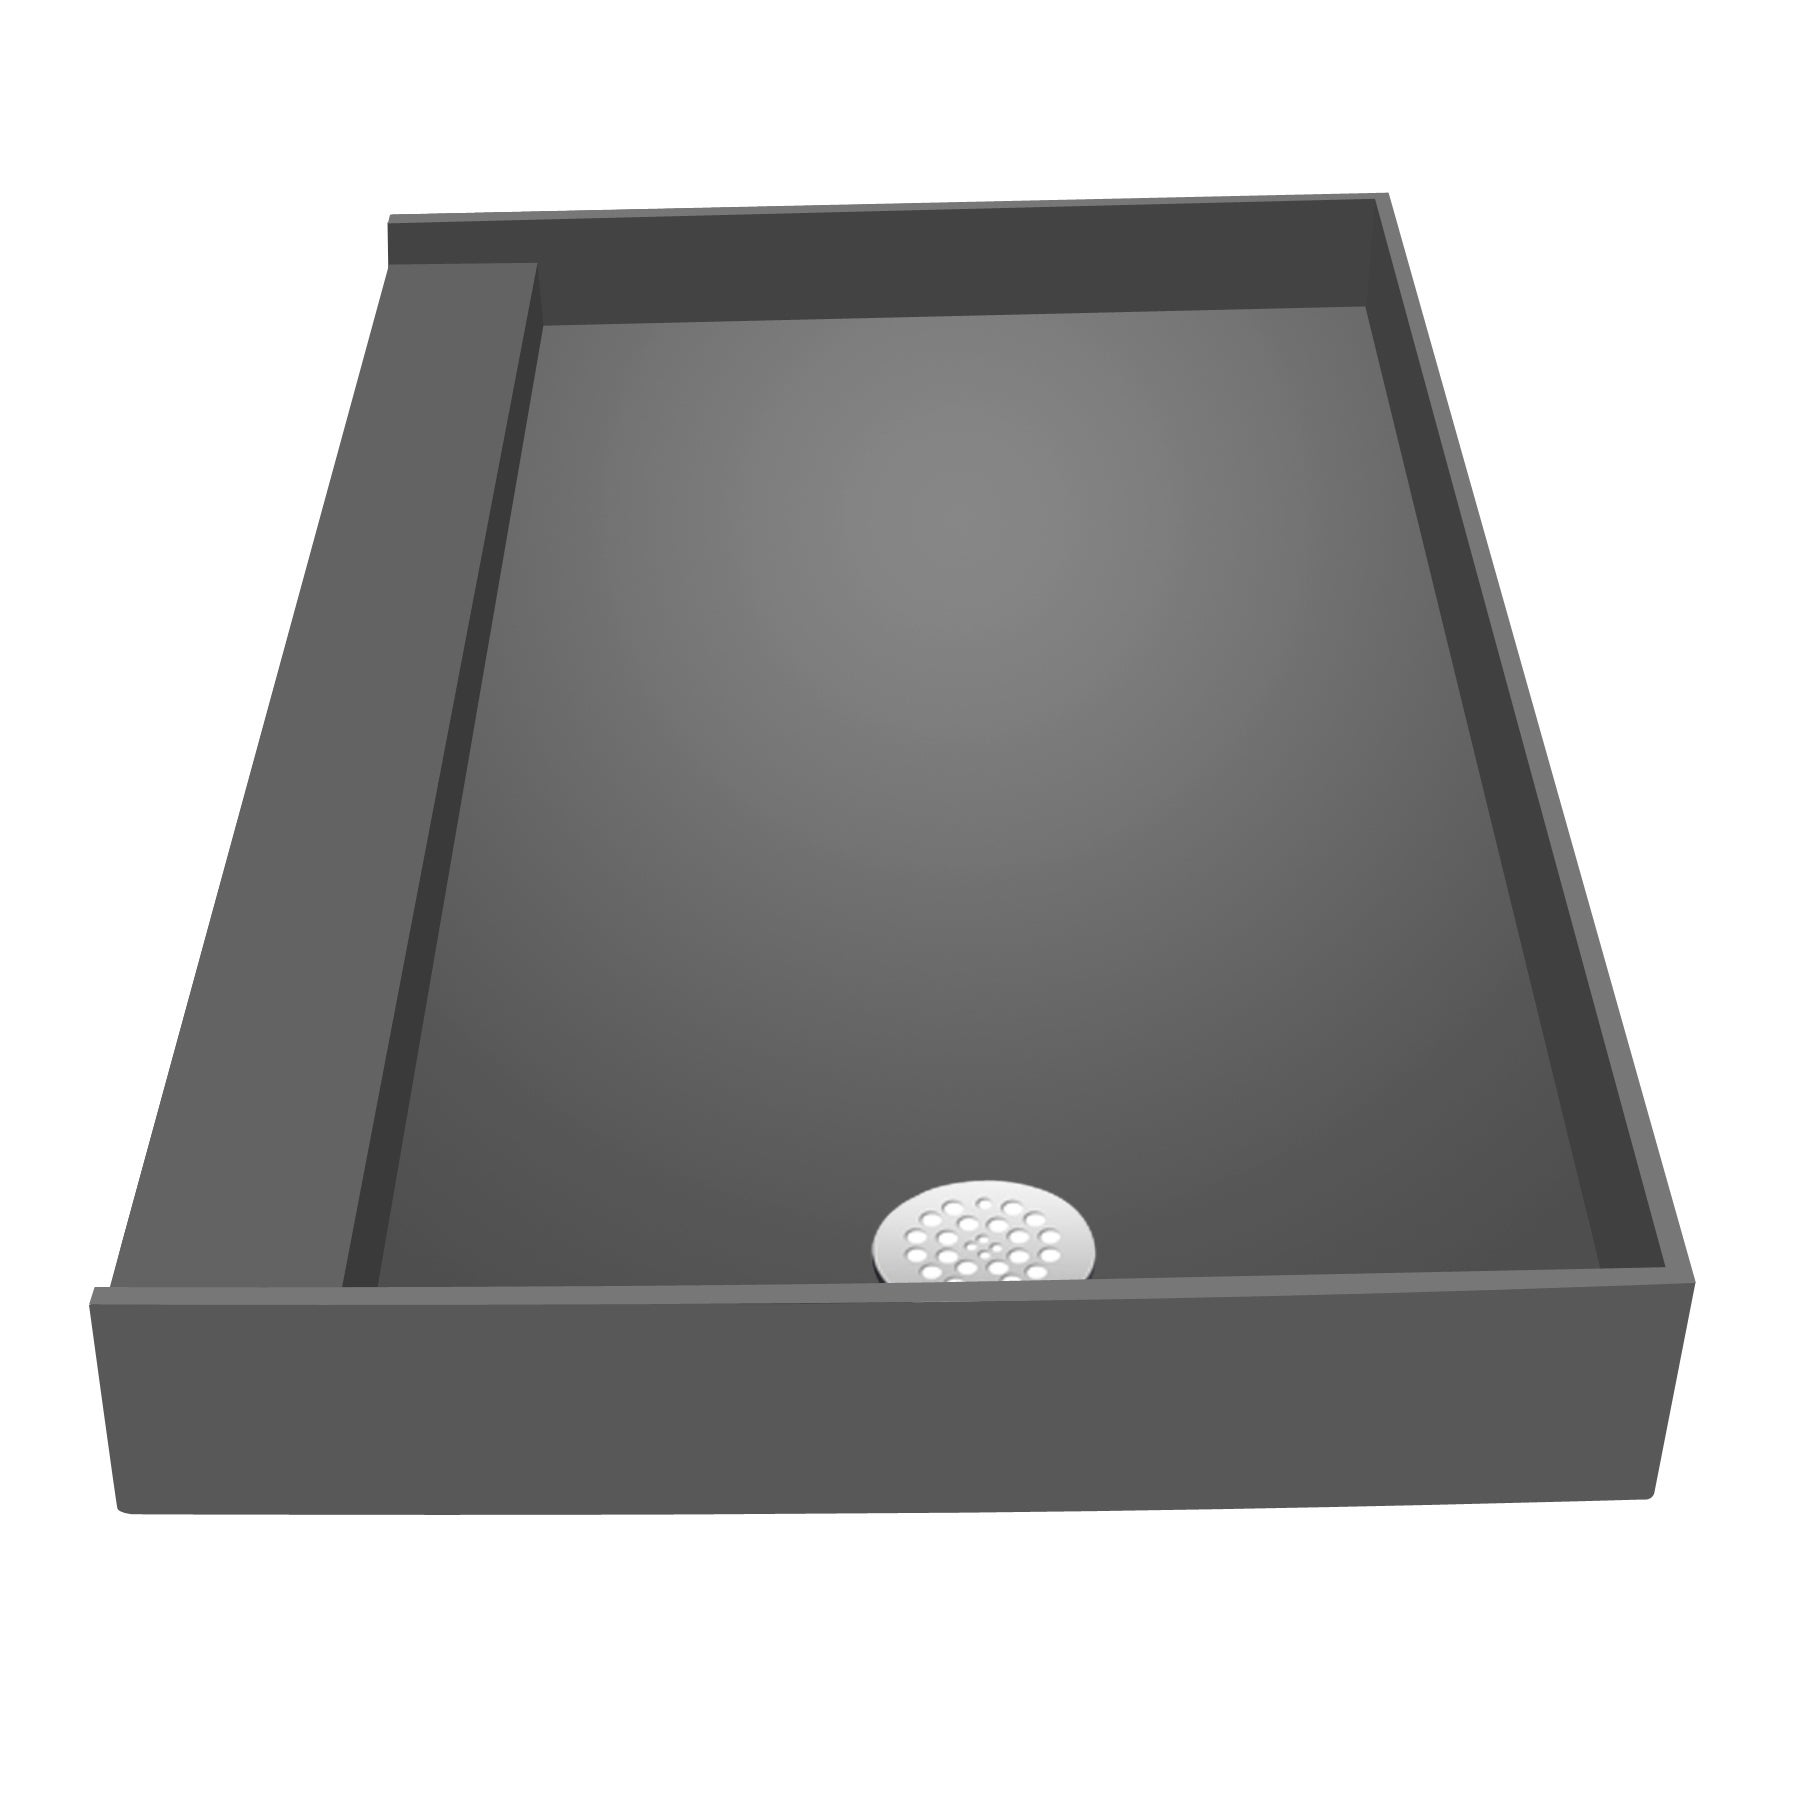 Shop Redi Base 30 X 48 Single Curb Shower Pan With Right Drain   Free  Shipping Today   Overstock.com   10124721